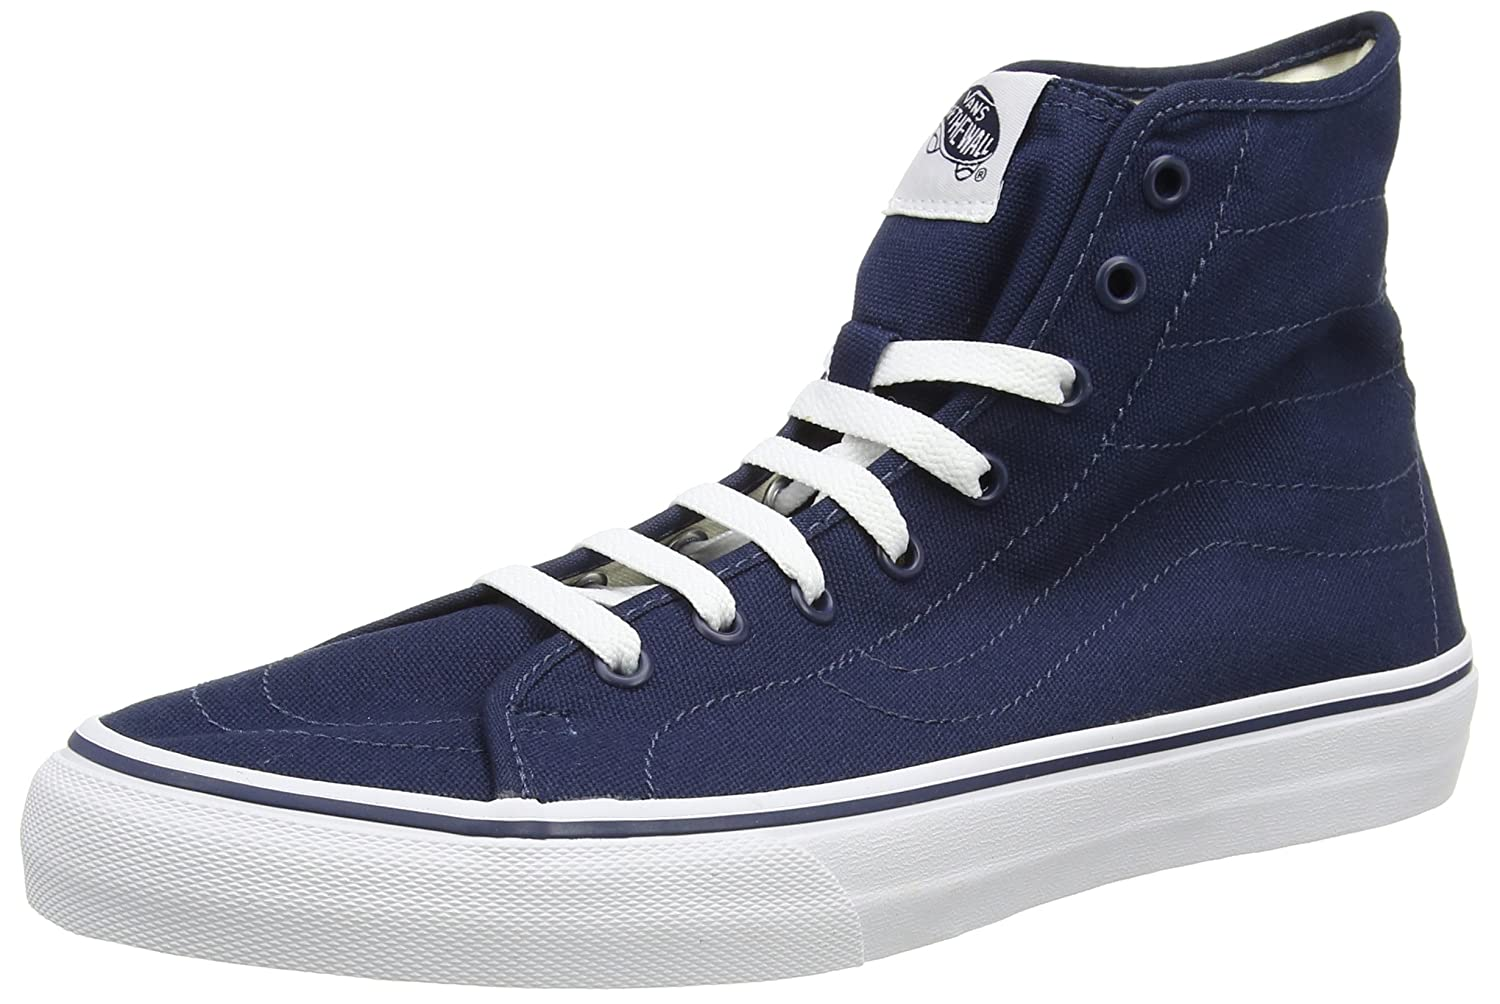 Vans U SK8-HI Unisex-Erwachsene Hohe Sneakers  35 EU|Blau ((Canvas) Dress Blues/True White)